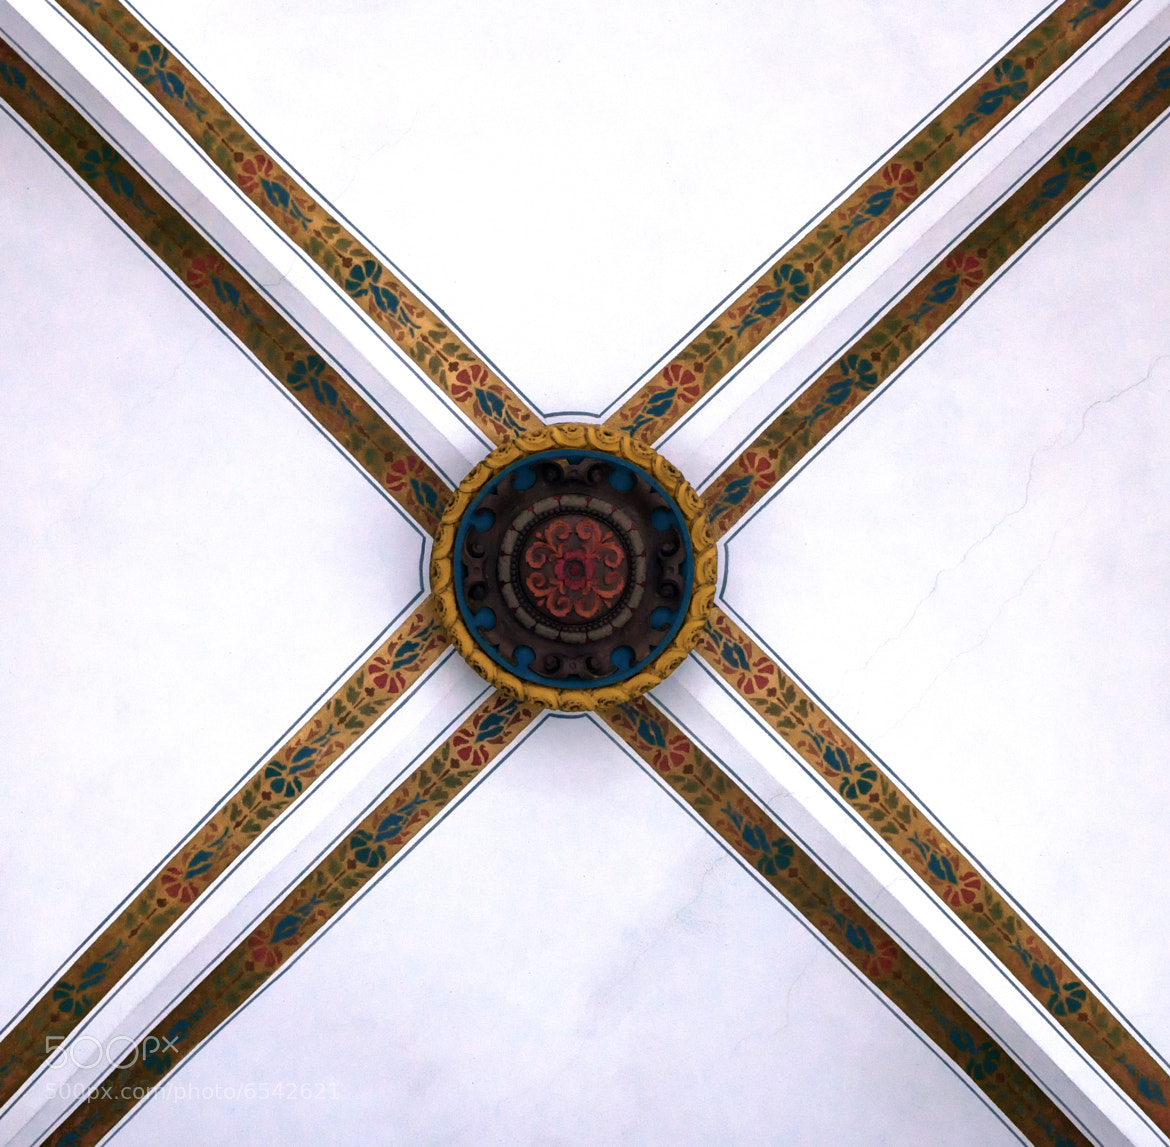 Photograph The cross on the ceiling by Stefan Steinbauer on 500px